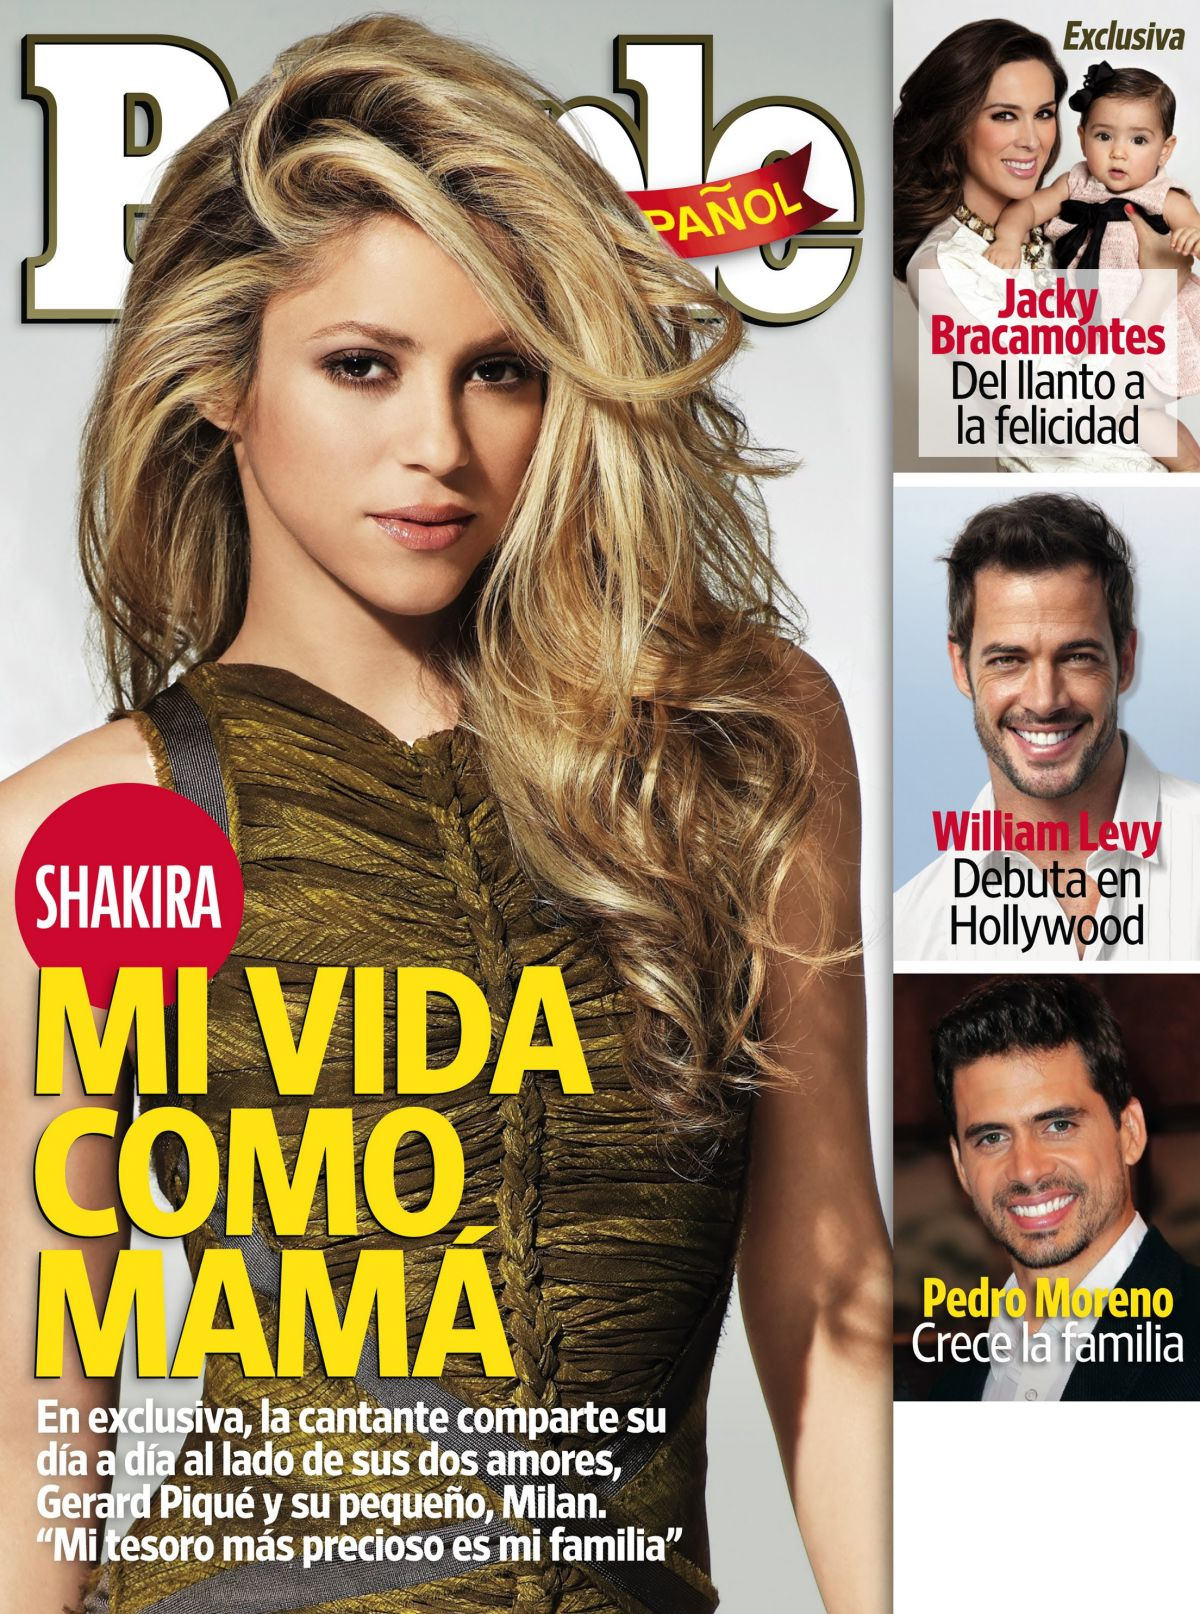 SHAKIRA on the Cover of People en Espanol Magazine, April 2014 Issue